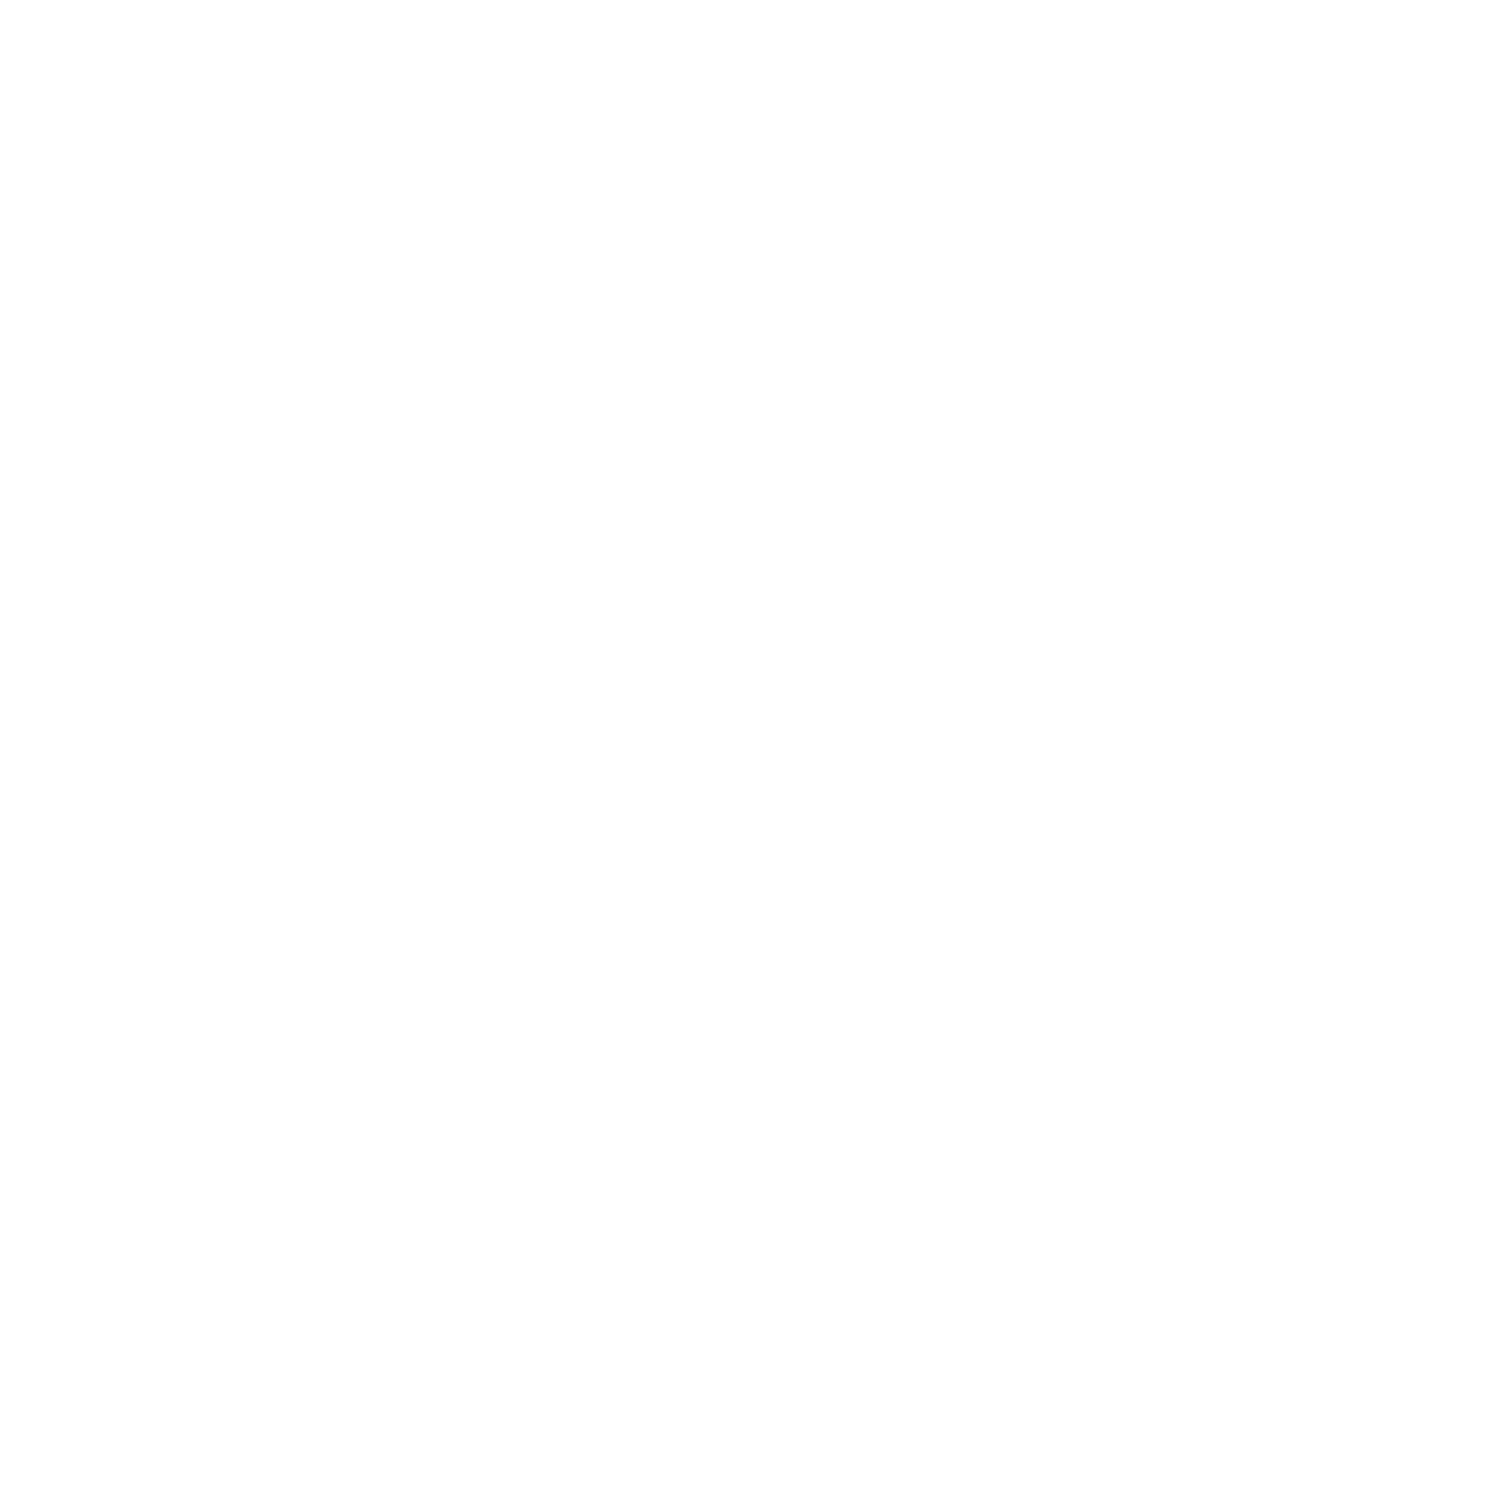 The Canadian Maker